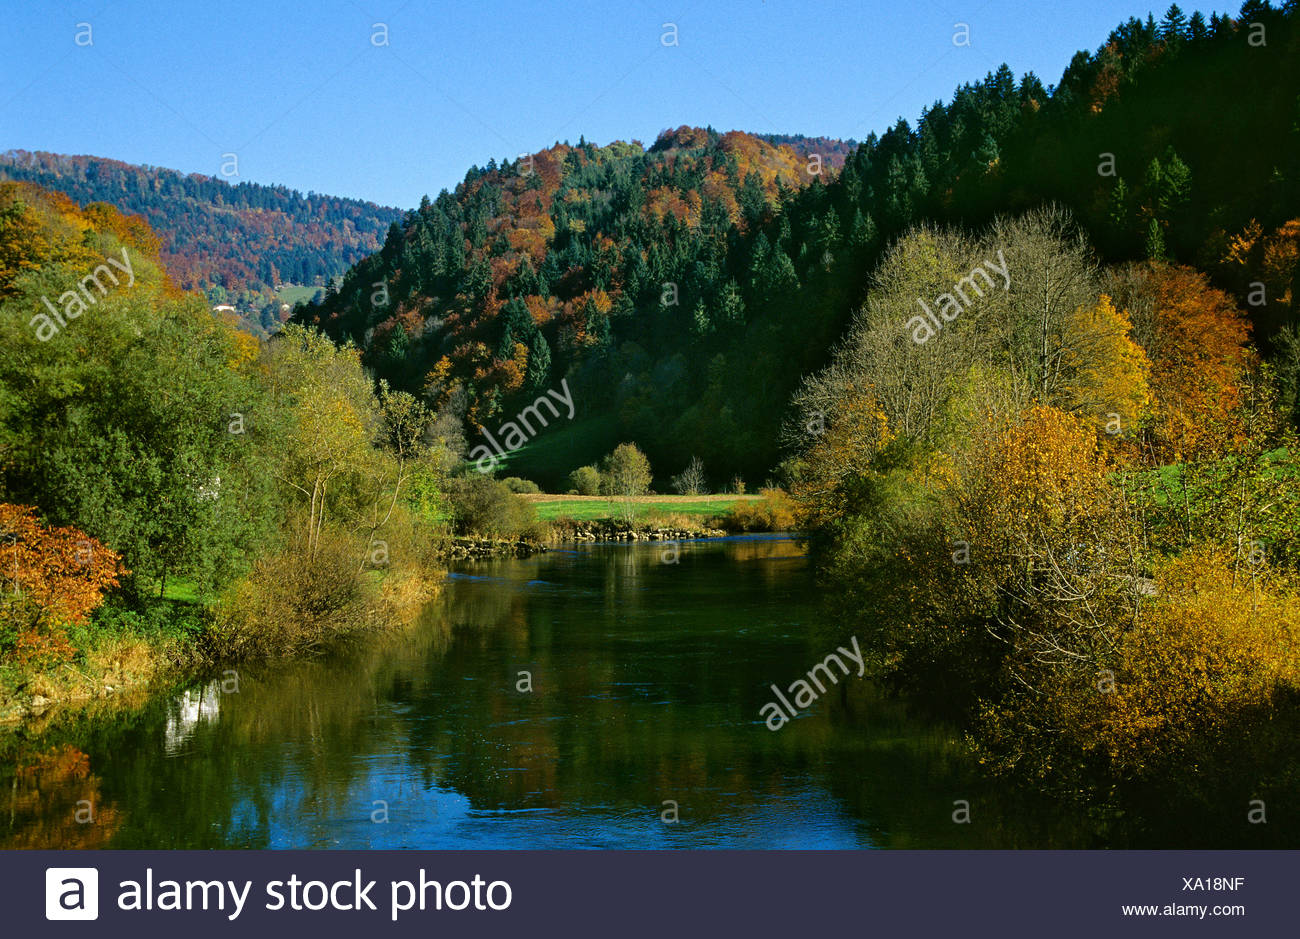 Doubs river river valley autumn scenery landscape valley Canton Jura Switzerland Europe - Stock Image